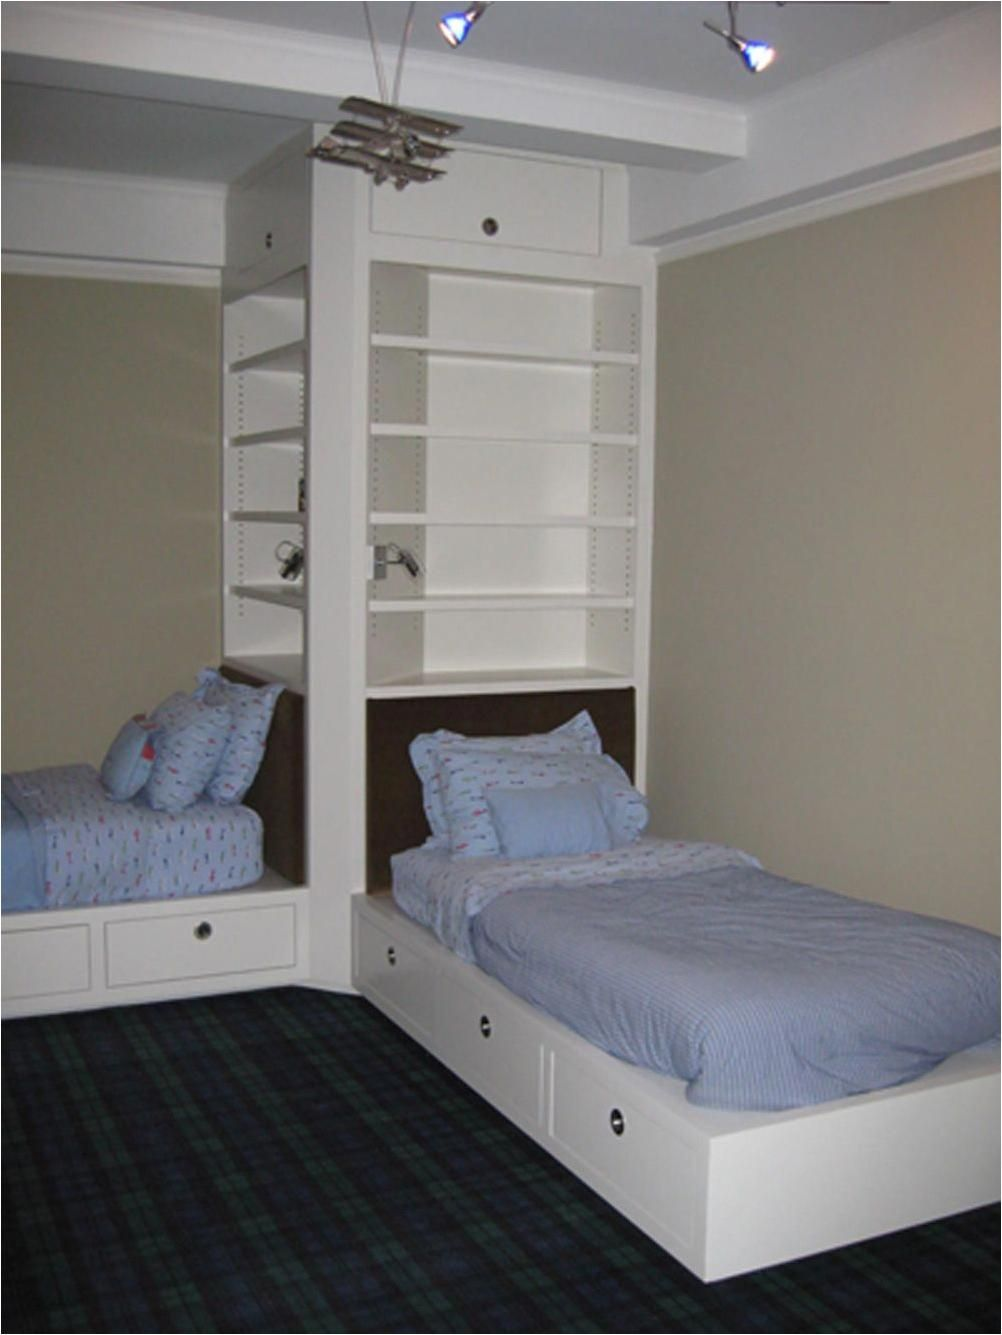 Modern bedroom furniture for less best place to buy bedroom